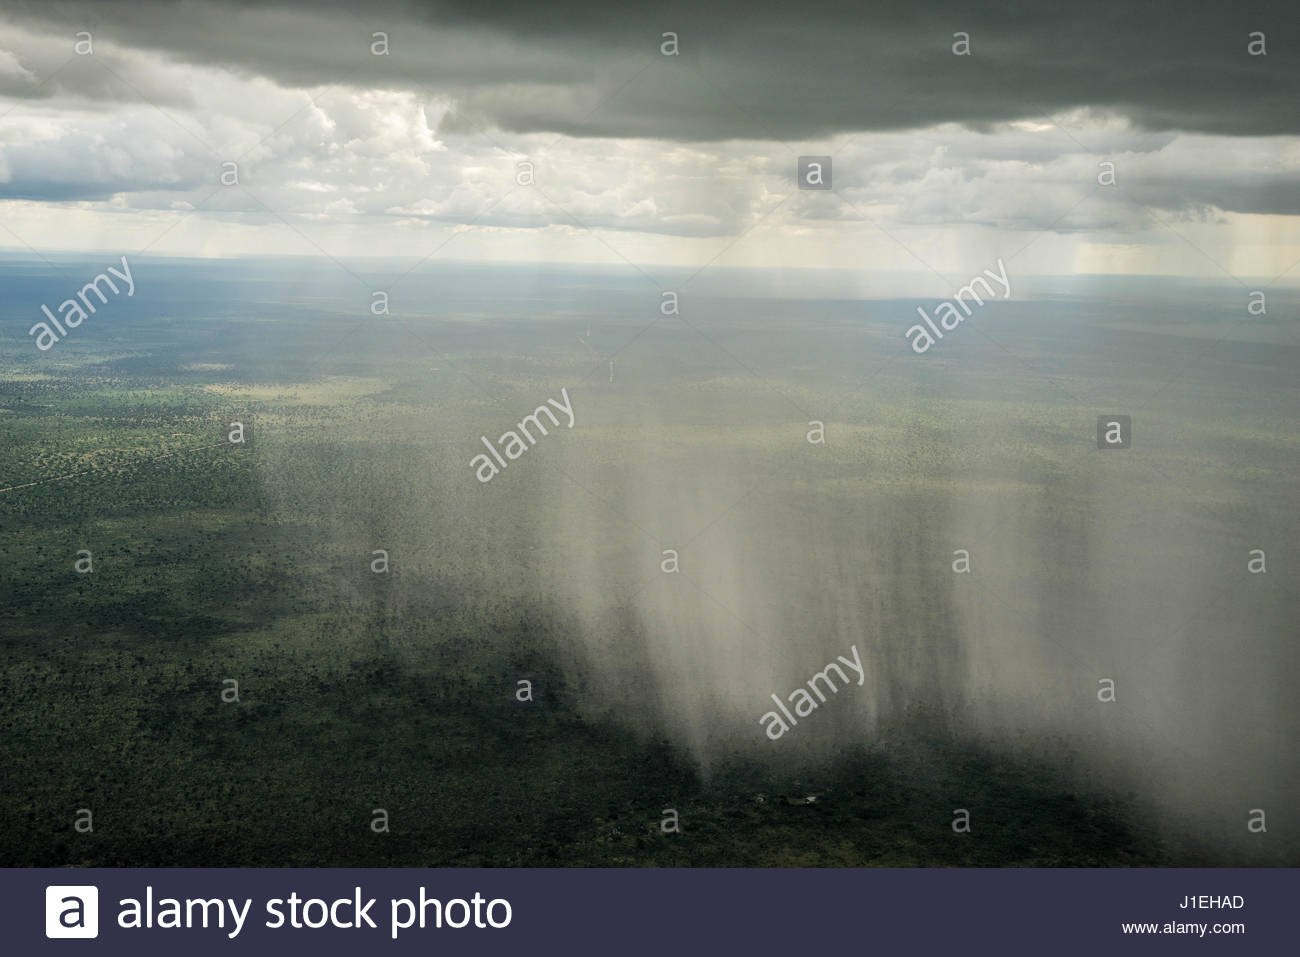 Rain Falling From Clouds